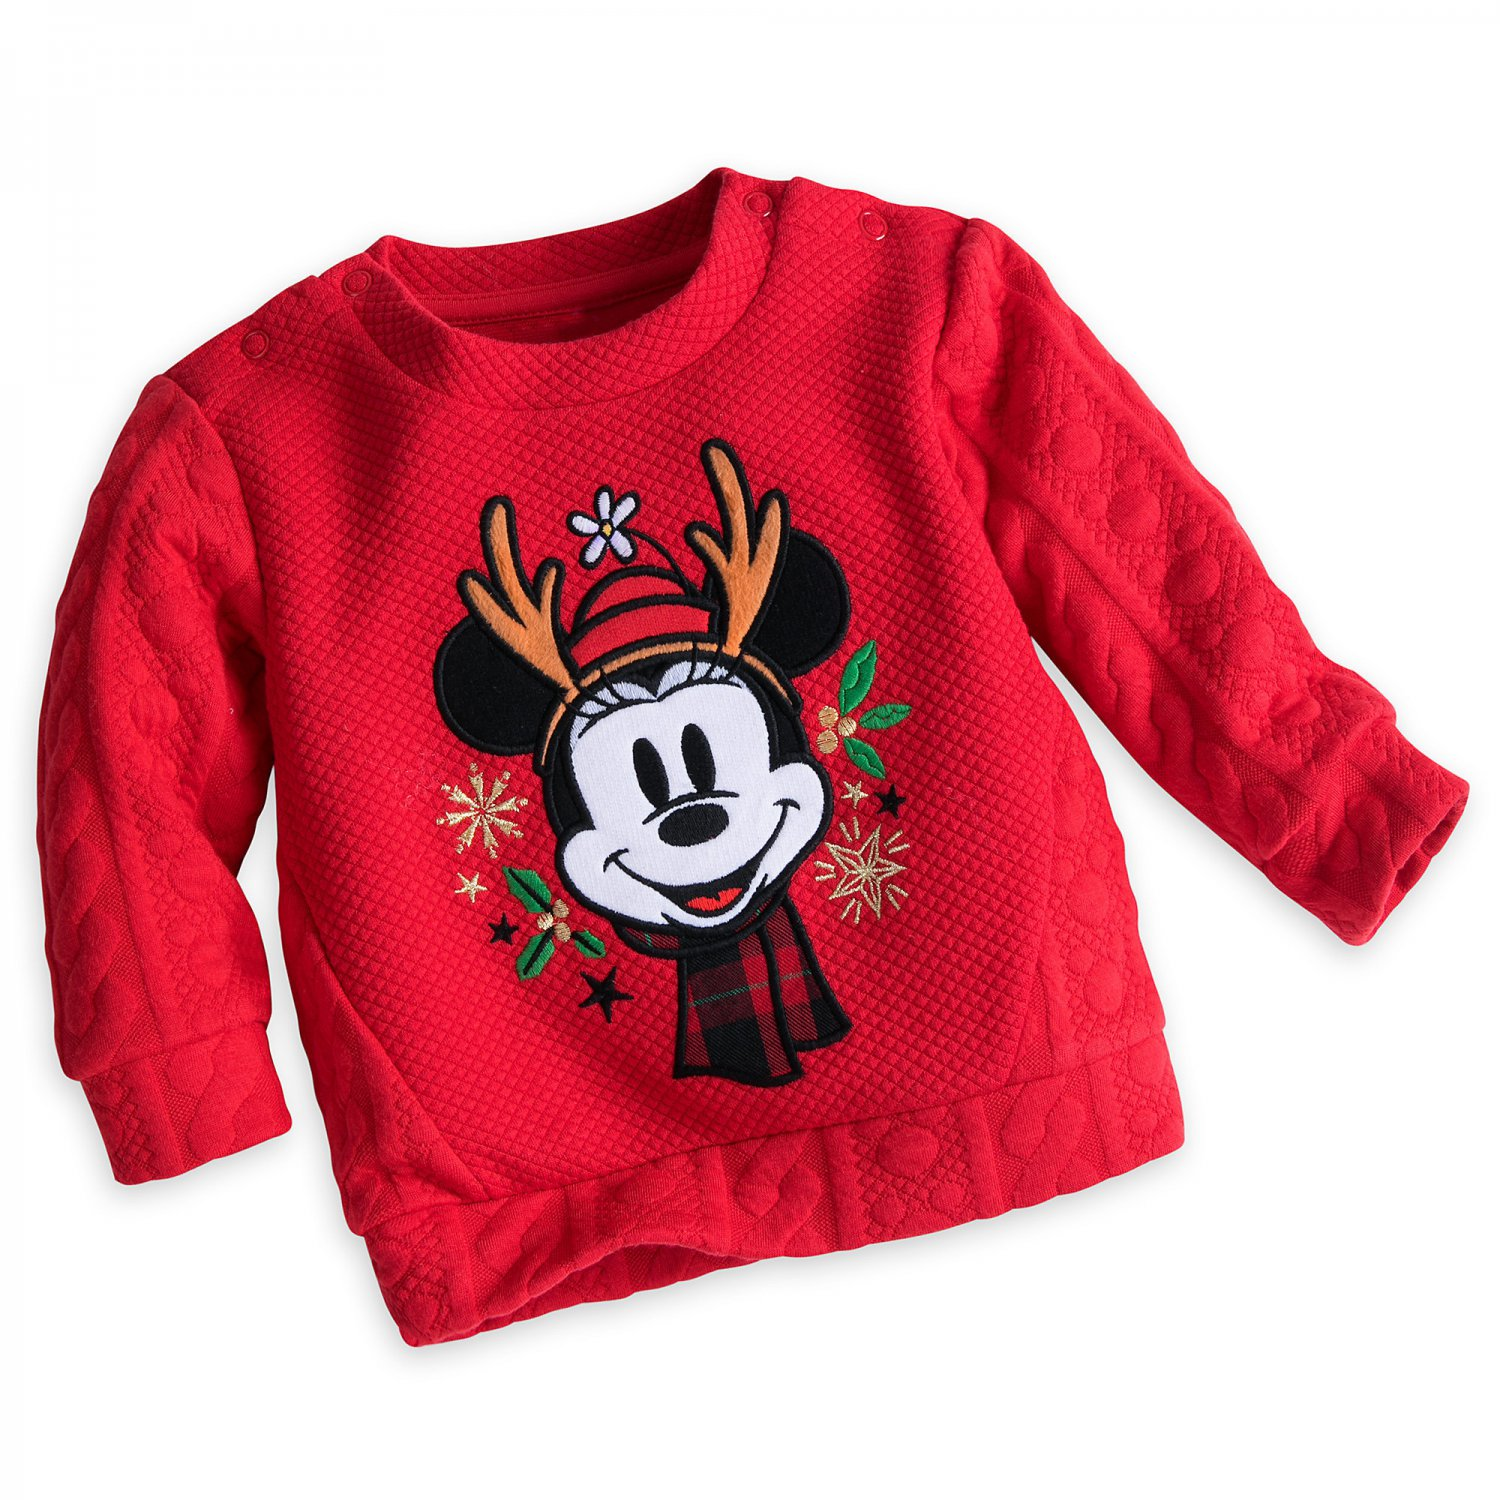 Disney Store Minnie Mouse Christmas Sweater for Baby 2017 0-3 Months